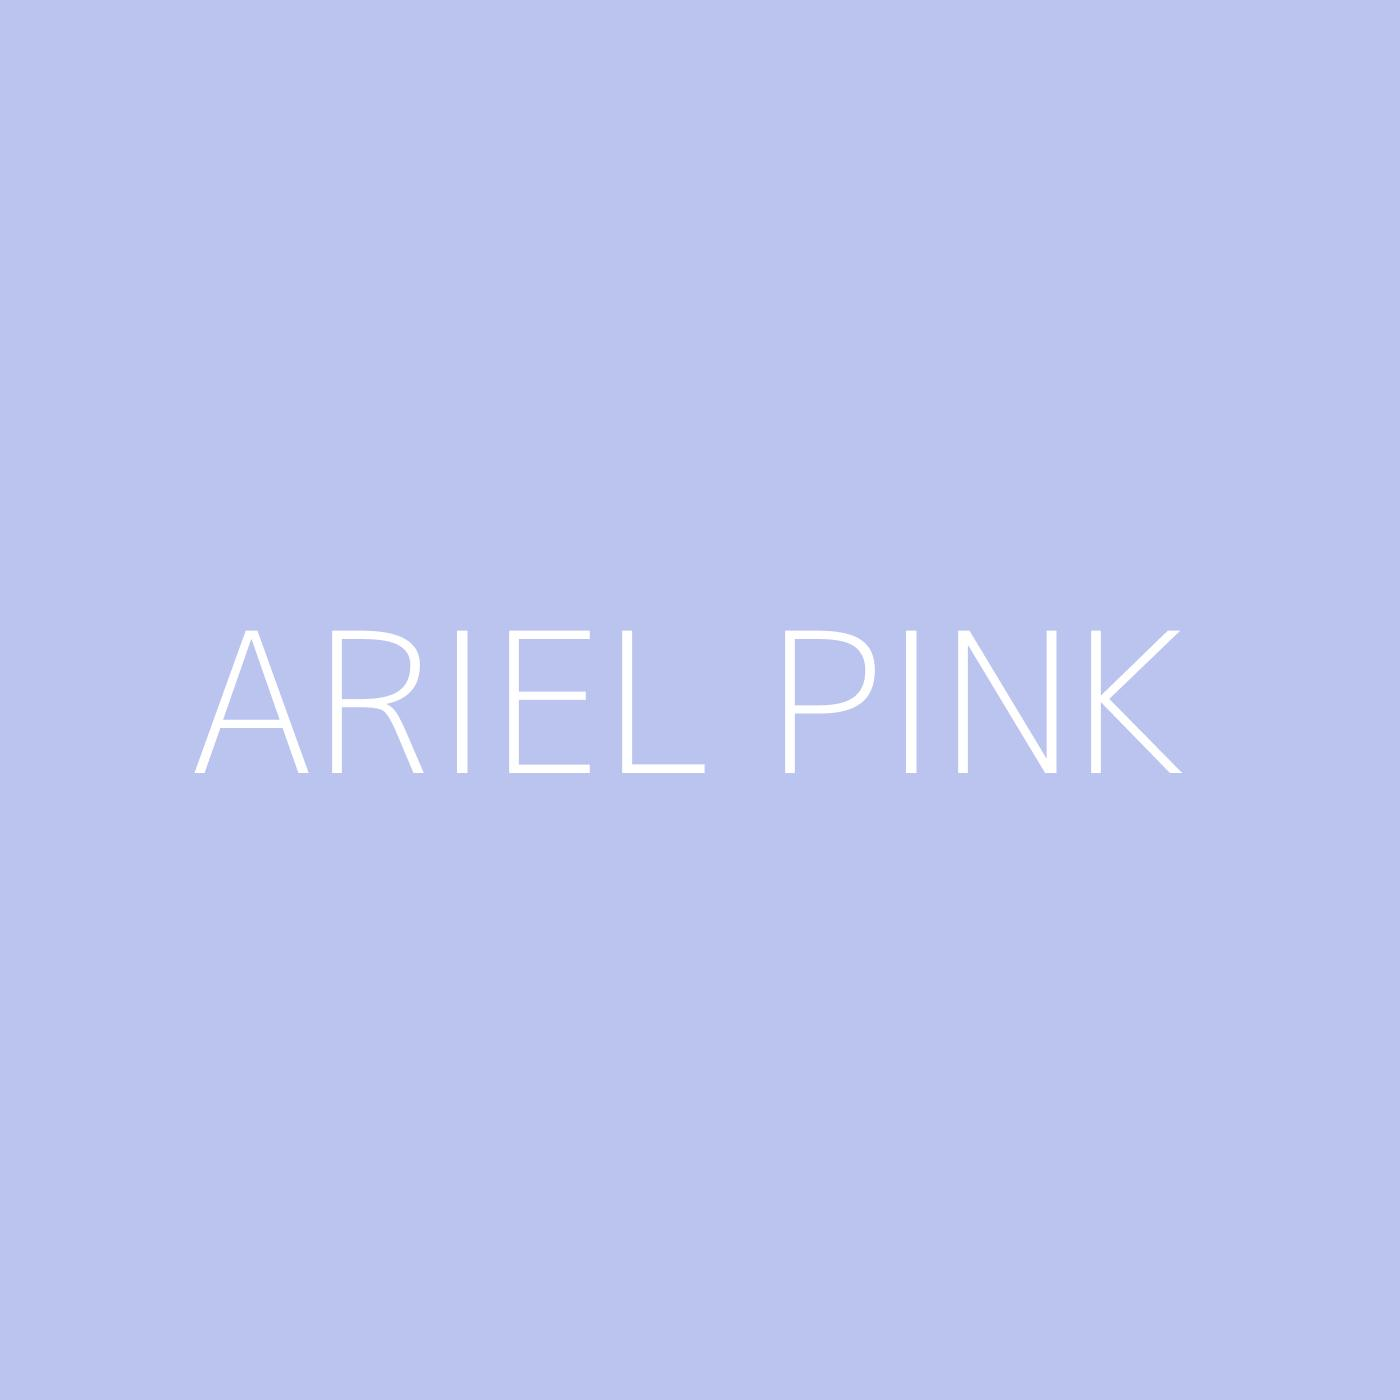 Ariel Pink Playlist Artwork